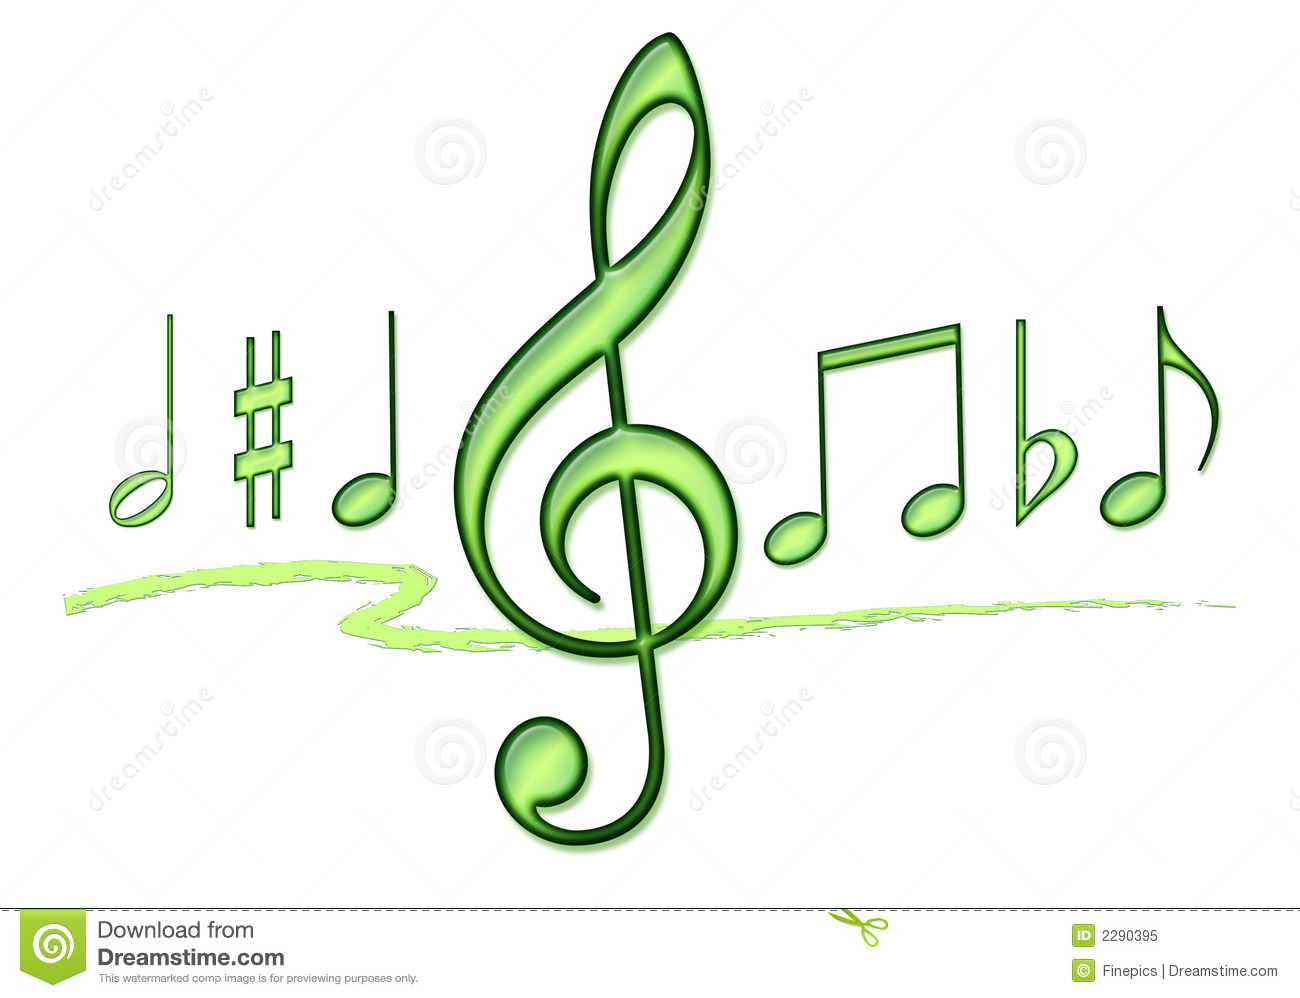 Music Note Collage Royalty Free Stock Photo - Image: 2290395